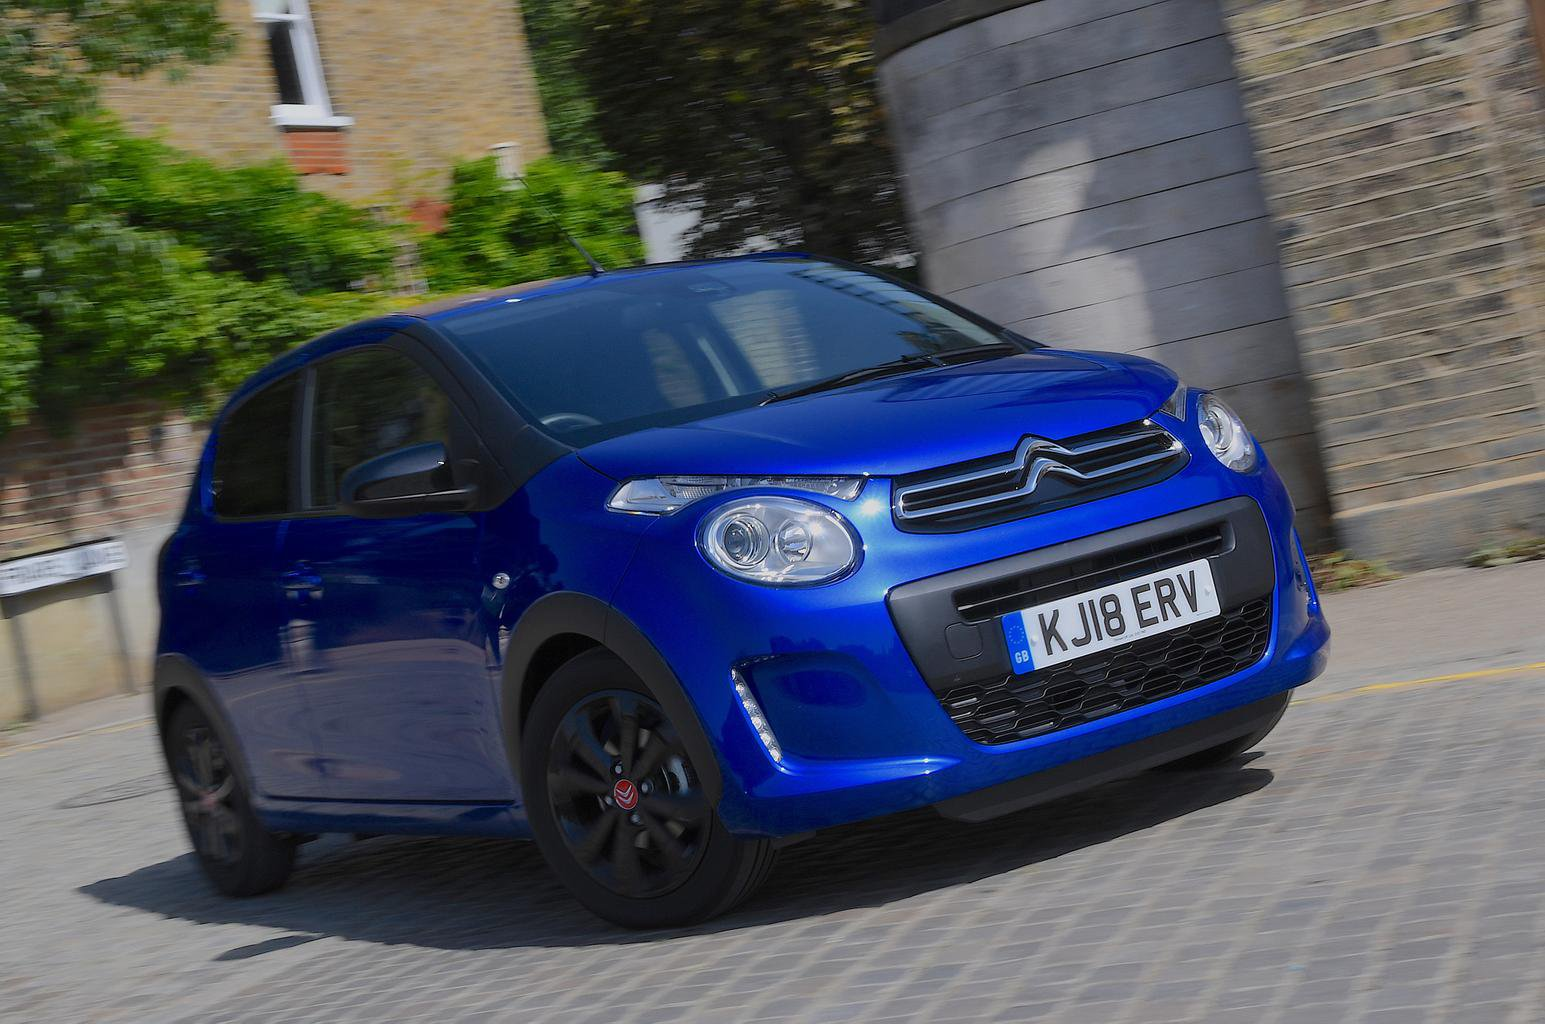 2018 Citroën C1 Urban Ride review – gallery, price, specs and release date